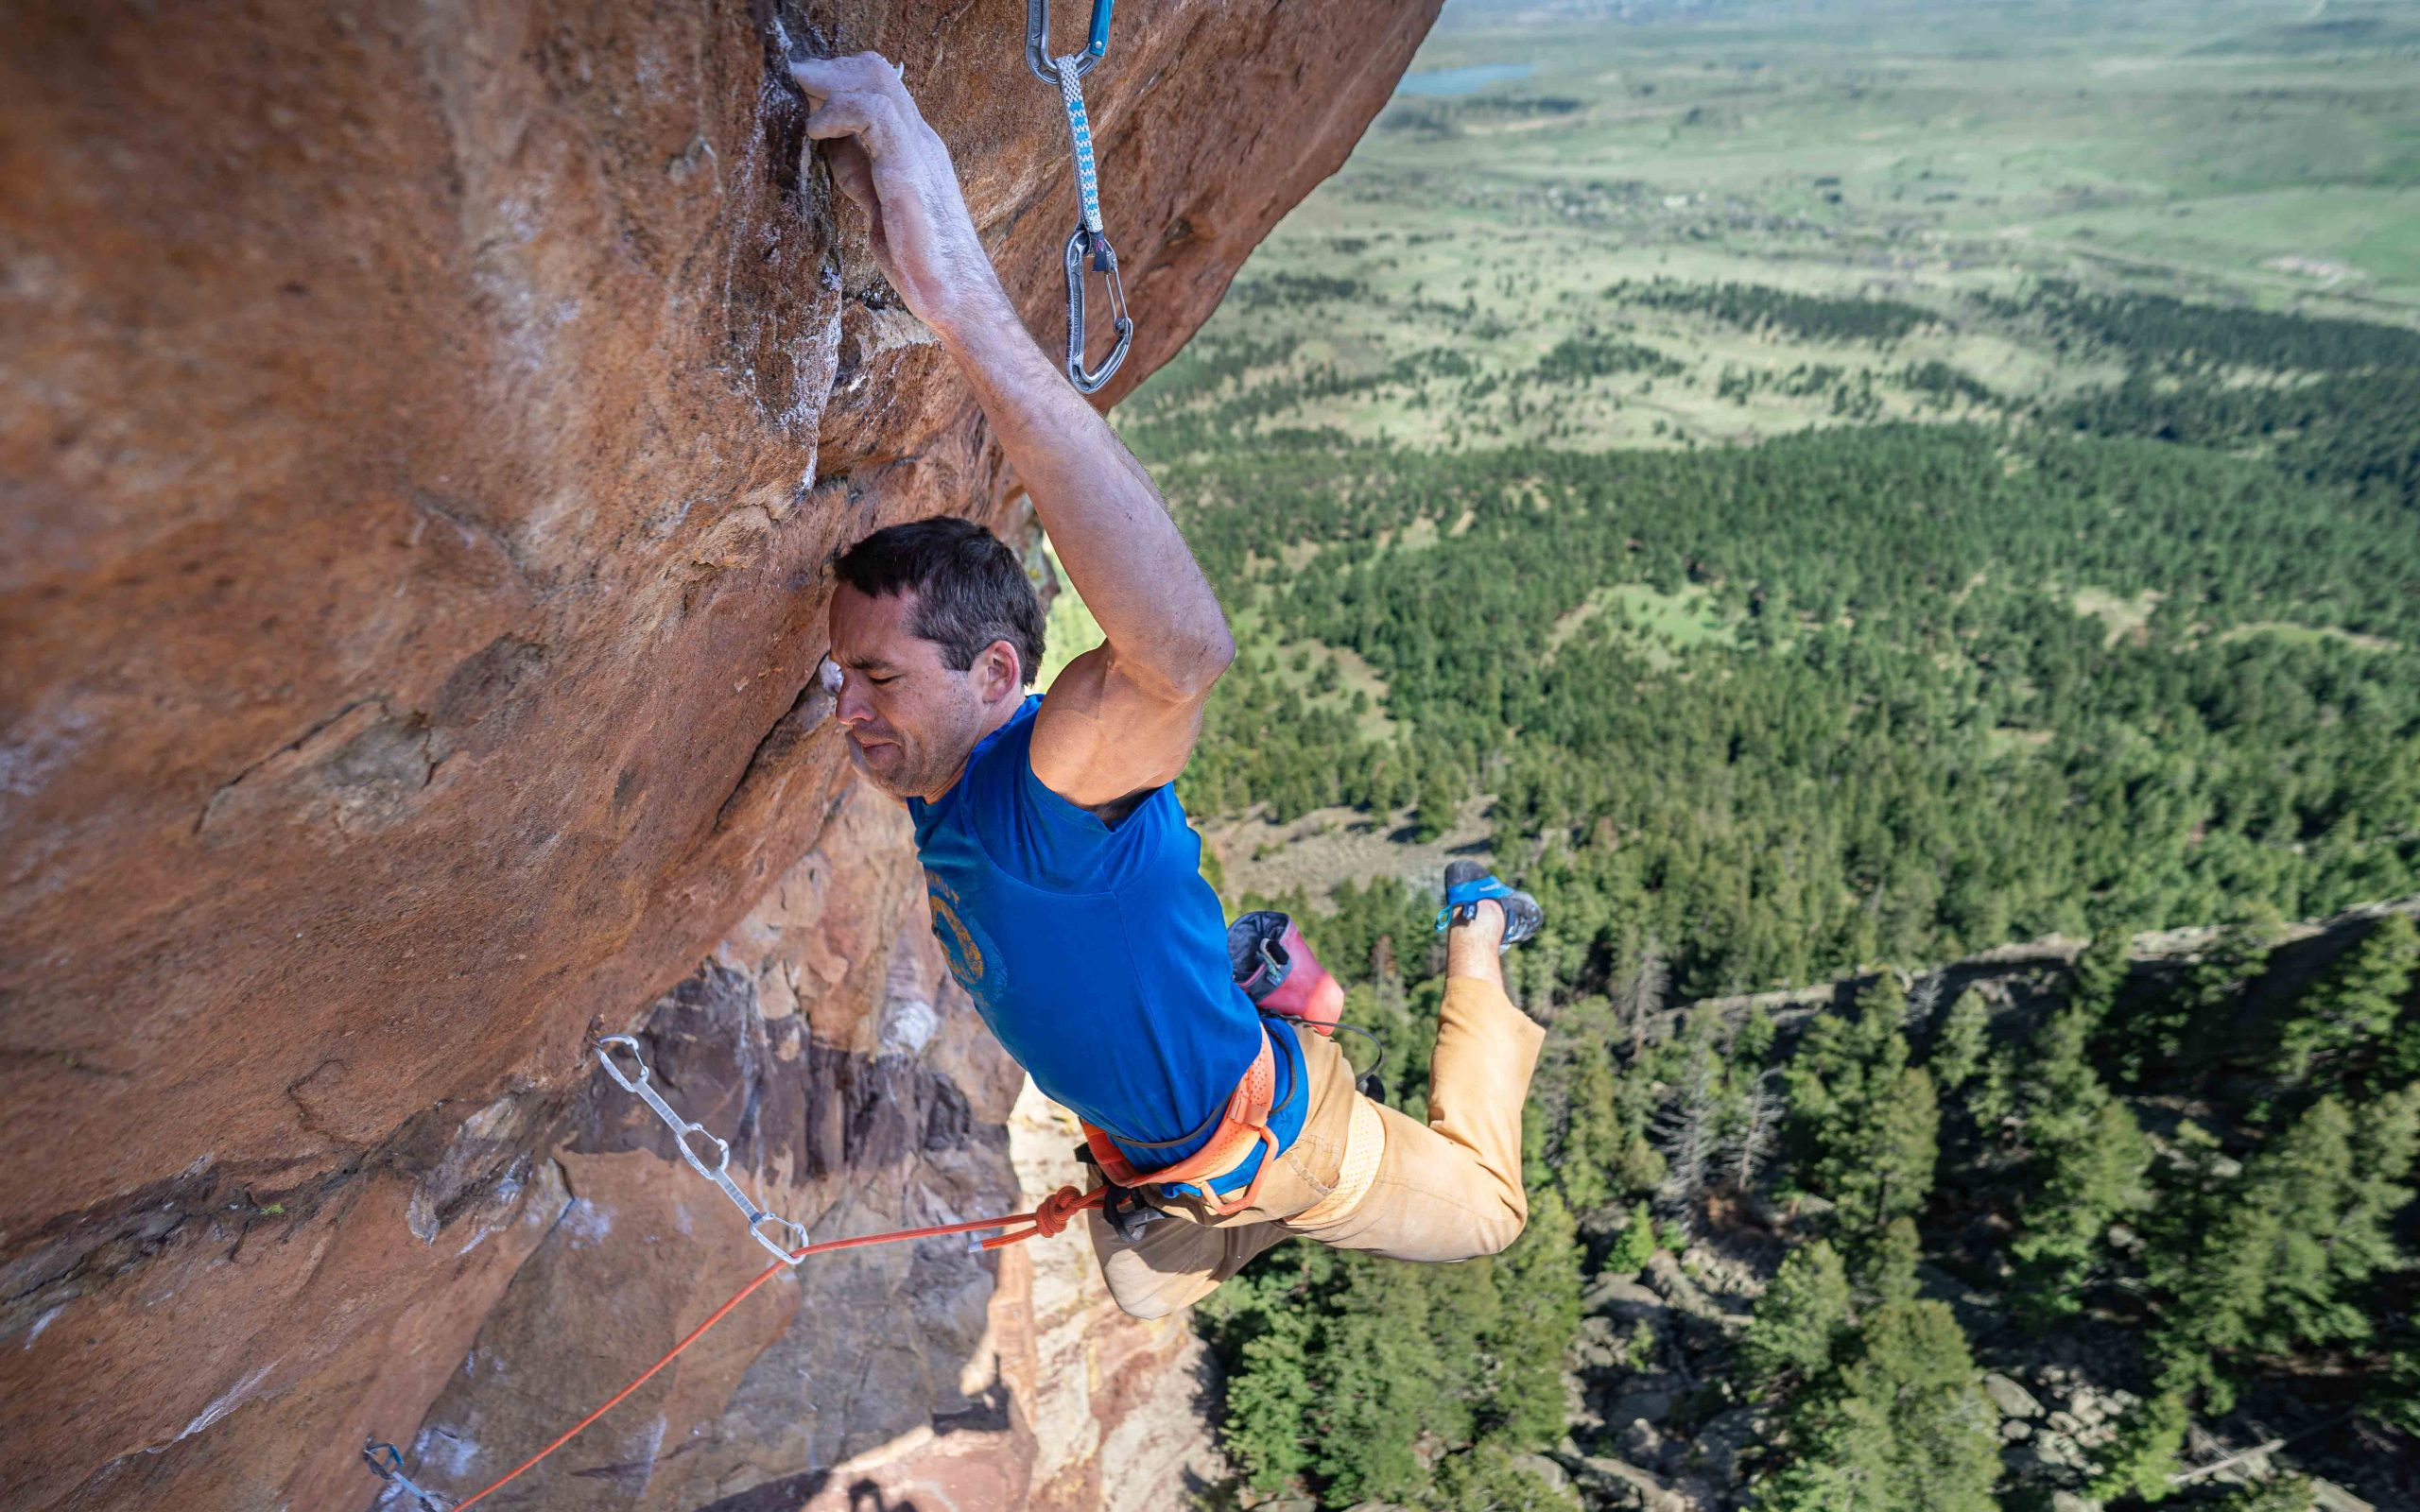 Vasya Vortnikov on Made In Time, the hardest route in the Flatiirons, Colorado